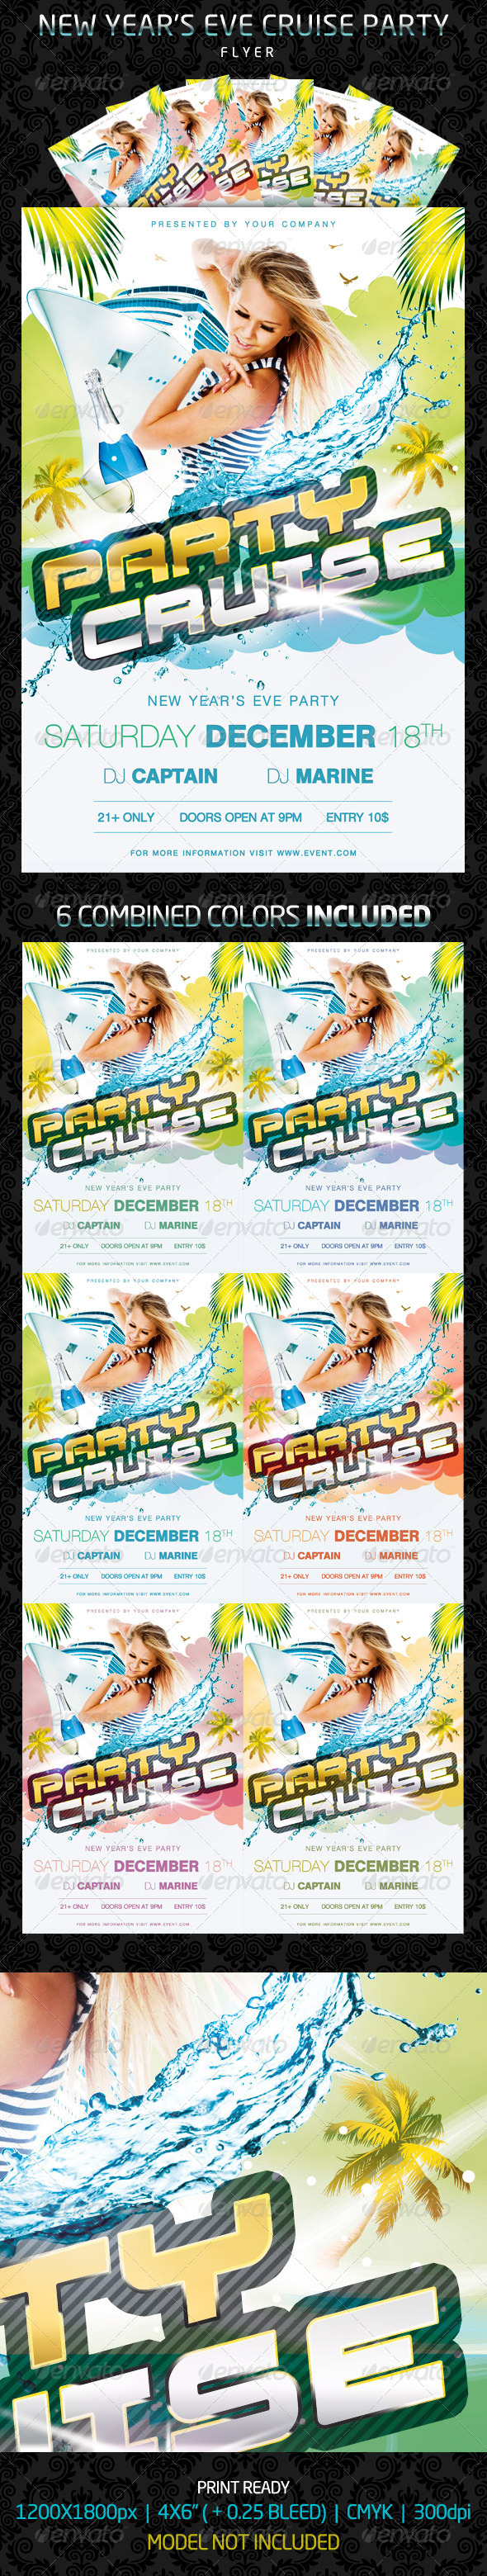 Graphic River Party Cruise Flyer Print Templates -  Flyers  Events  Clubs & Parties 926382